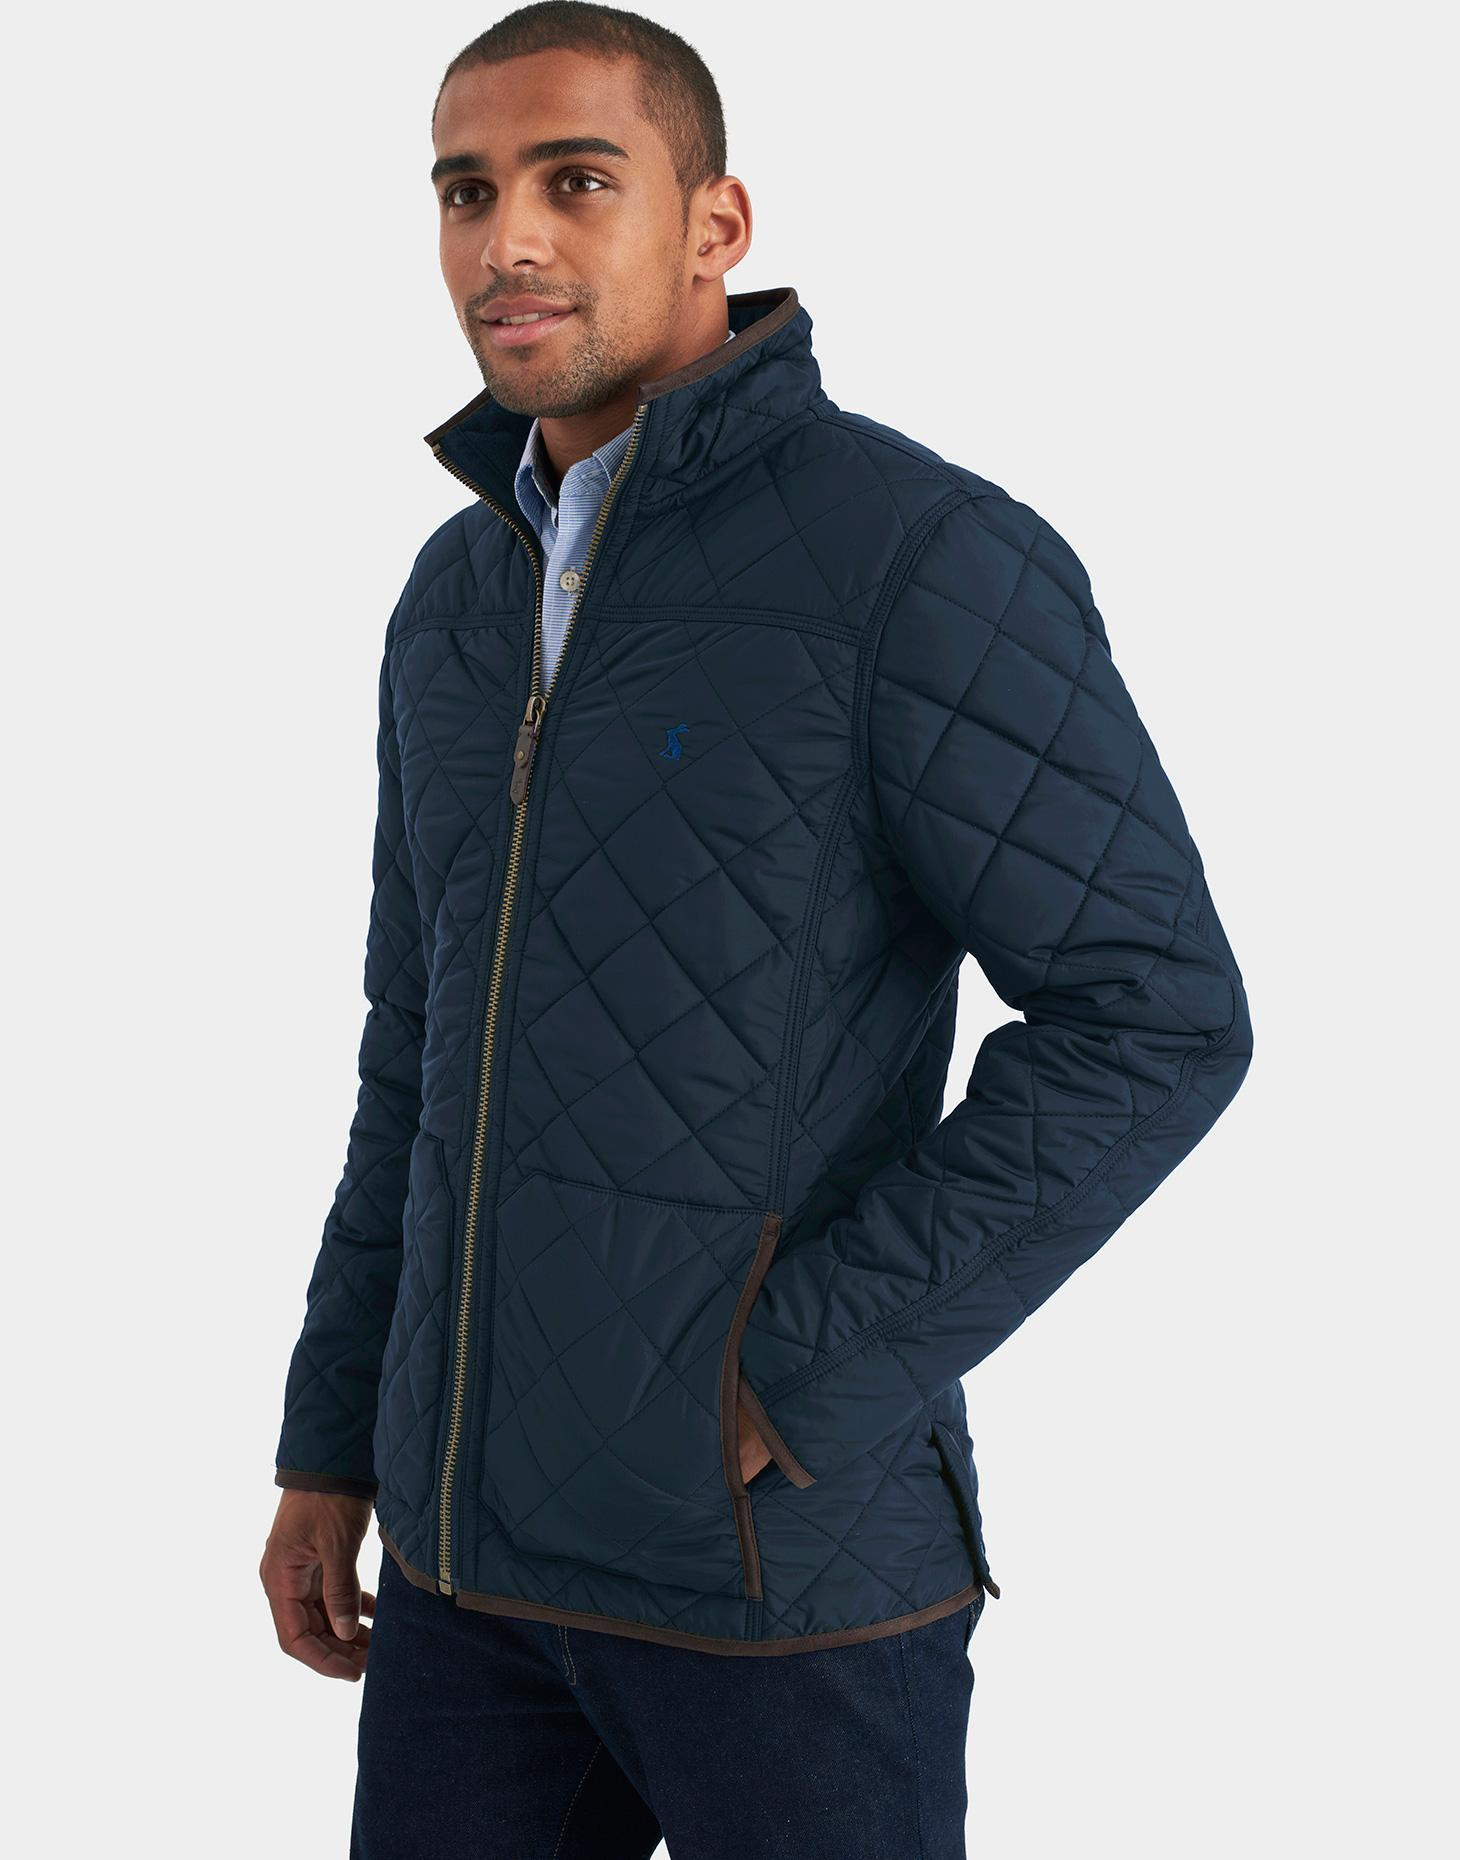 Retreat Quilted Jacket By Joules Thread